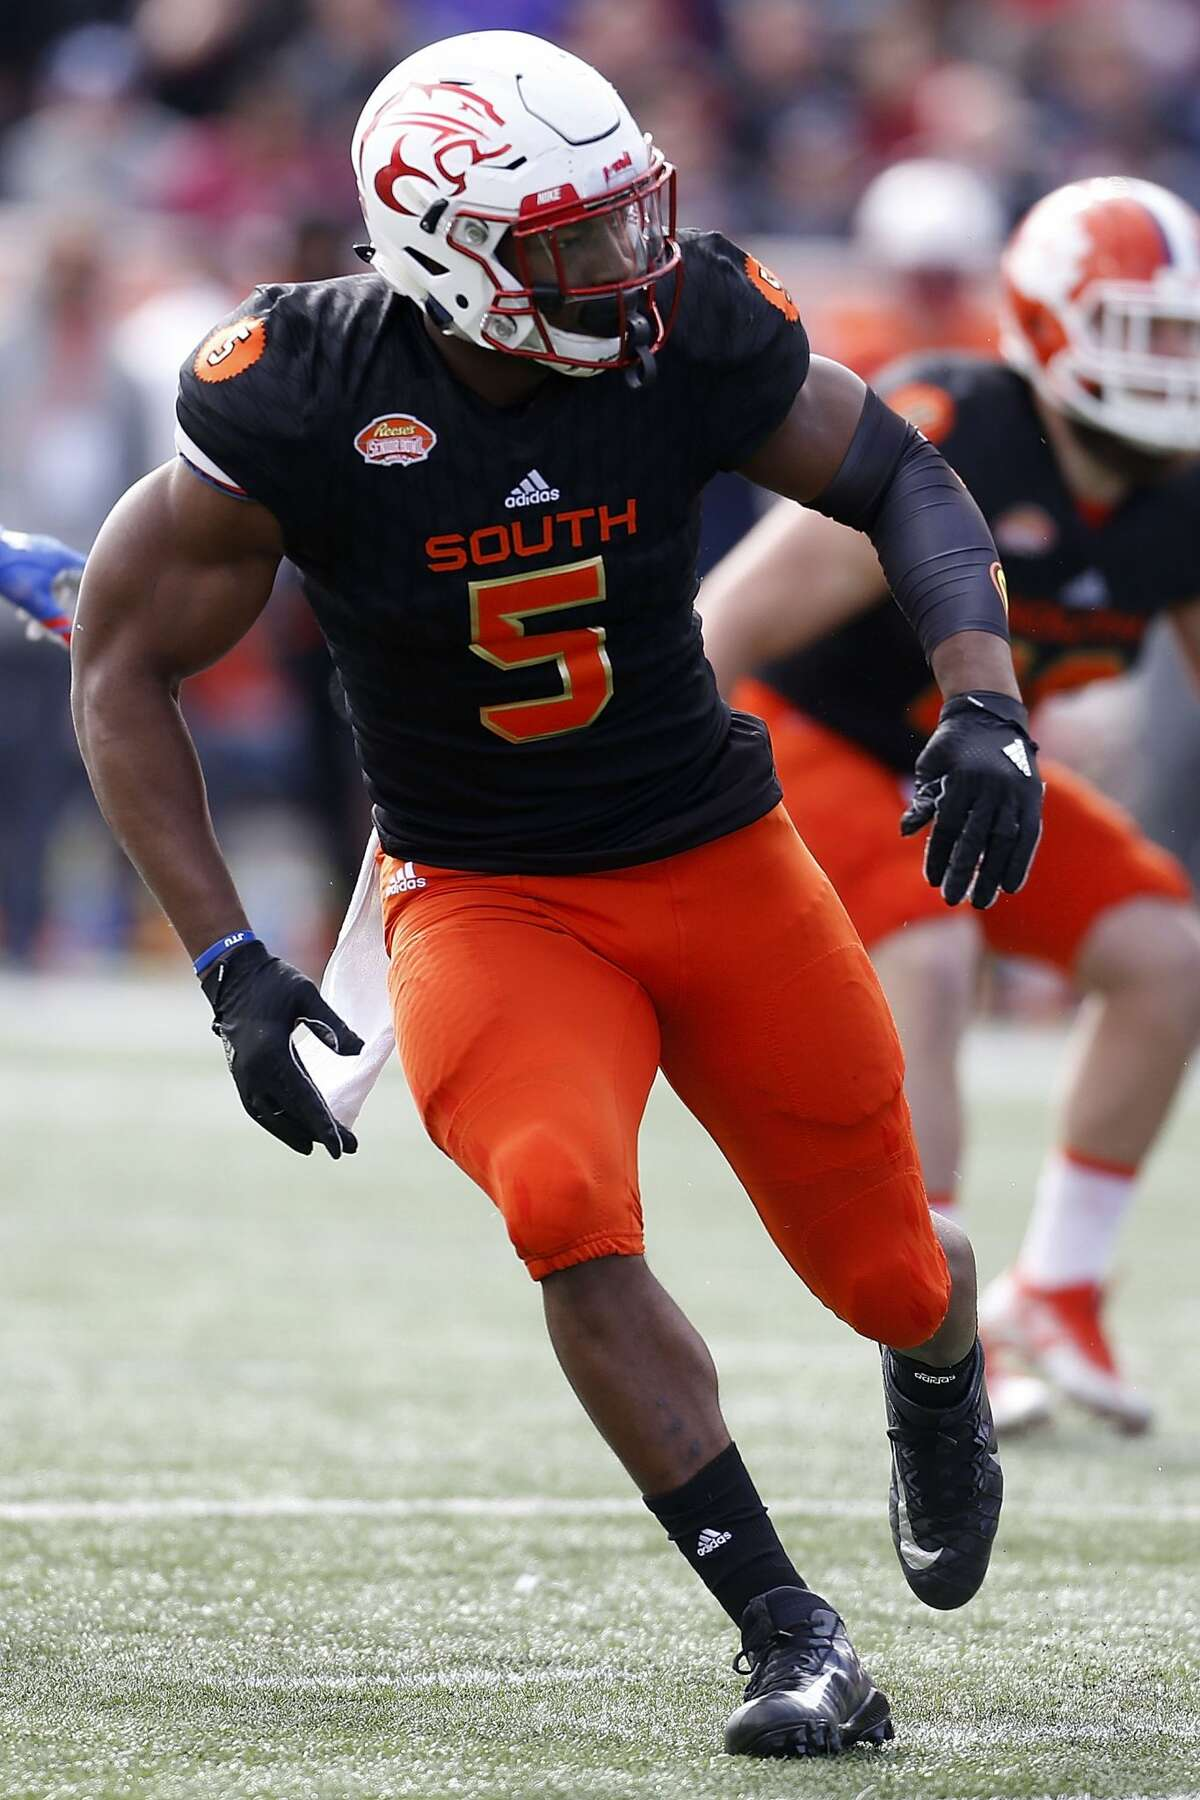 LB Tyus Bowser, Houston Notes: The former college basketball player might be on the smallish side for an edge rusher, but some team will take a risk on his athleticism.